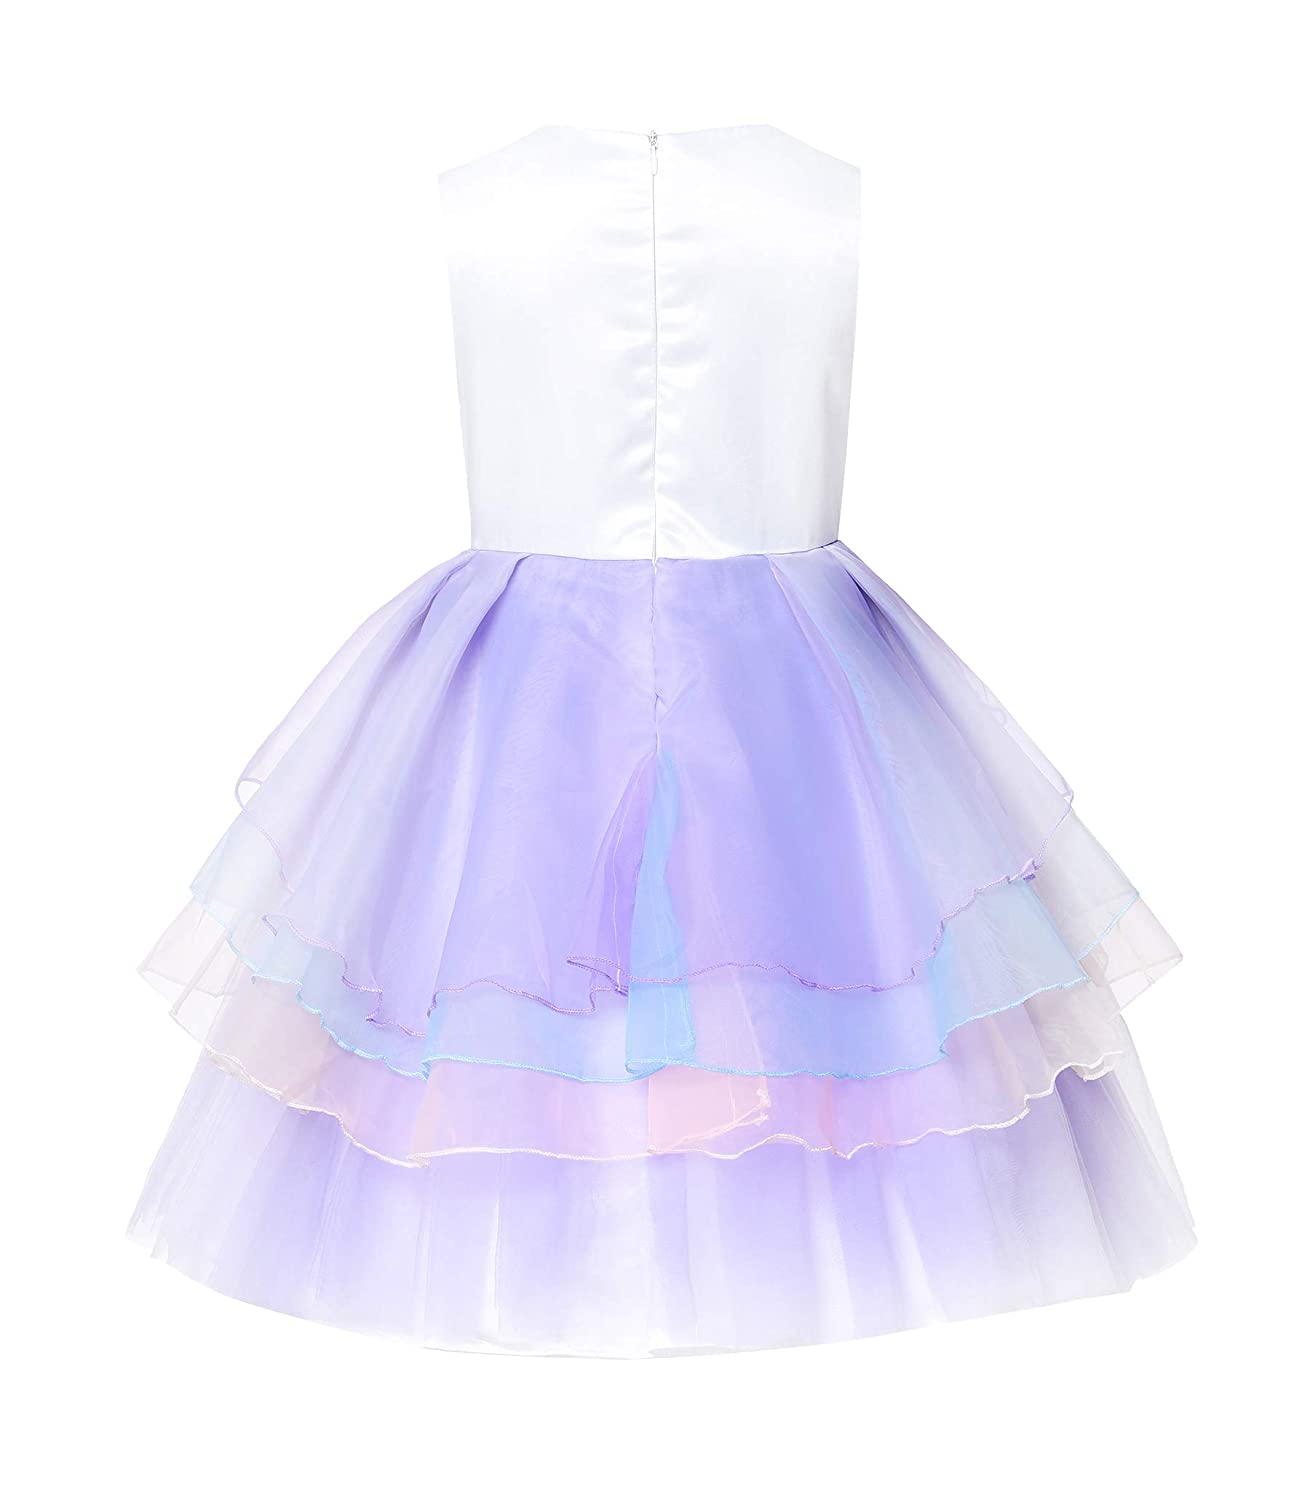 be8c93dce28e4 JerrisApparel Girls Unicorn Tulle Dress Sleeveless Party Costume Evening  Gowns JEA2319